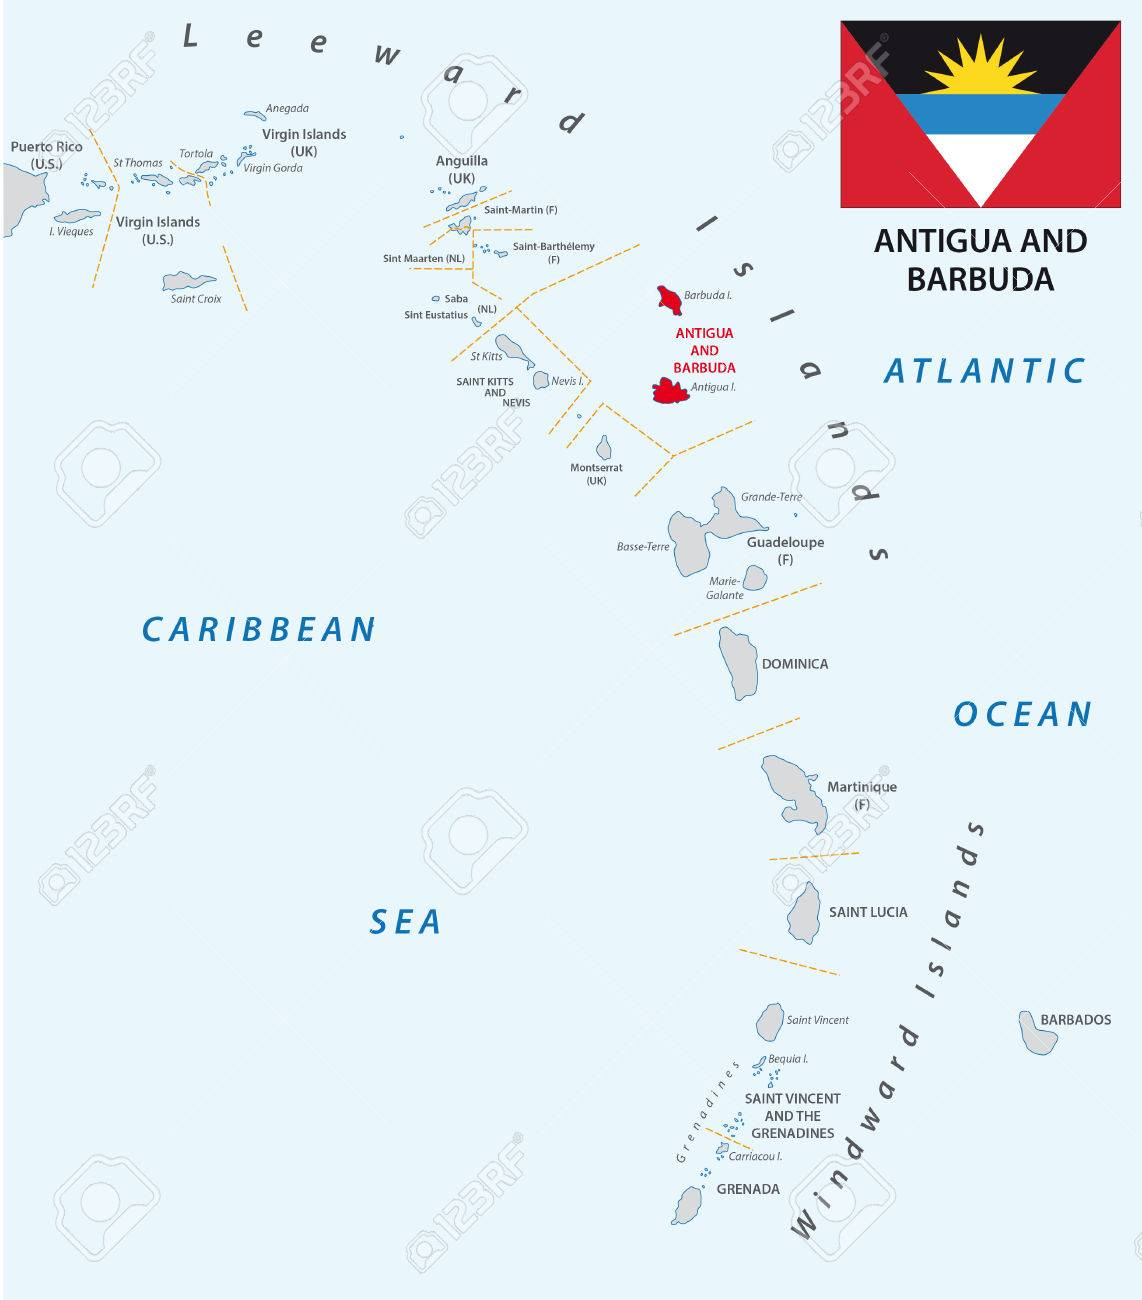 Lesser Antilles Outline Map Antigua And Barbuda With Flag Royalty